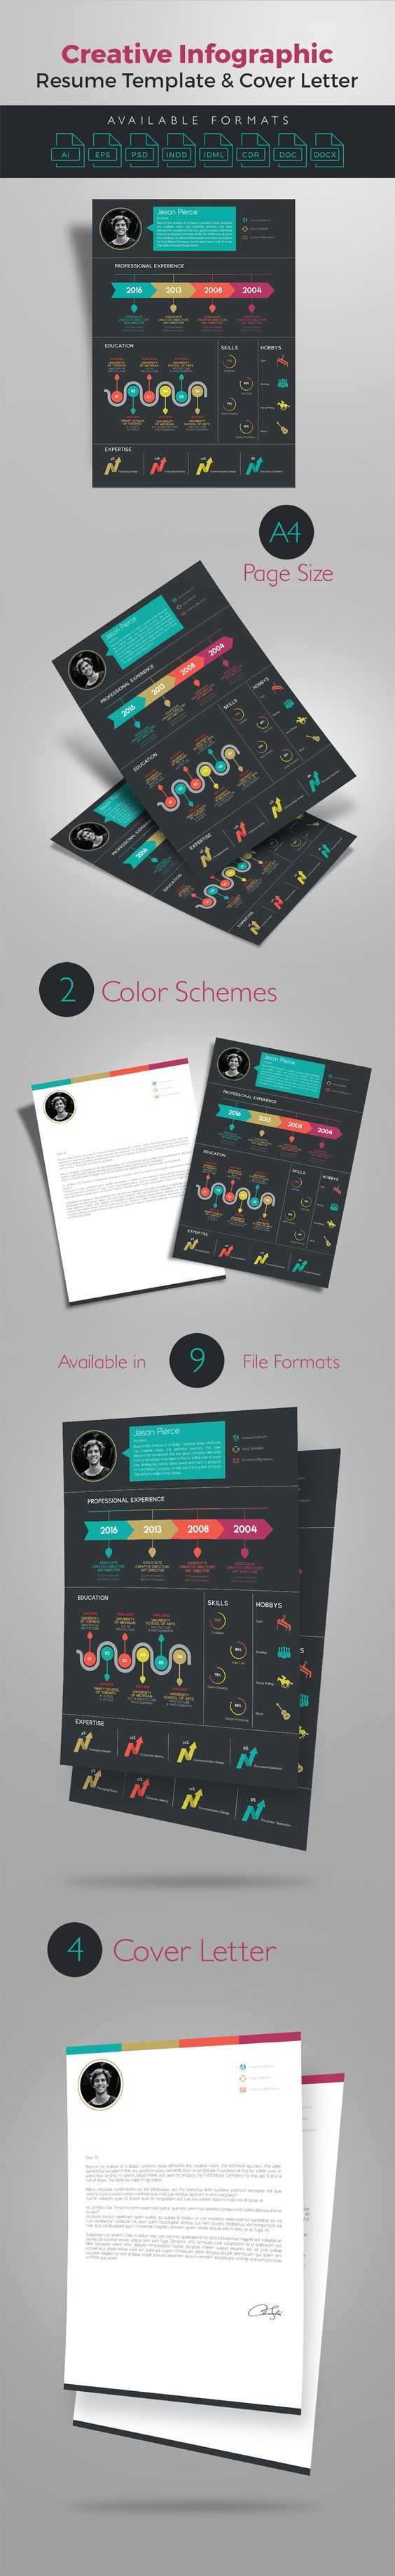 office assistant cover letter%0A Creative Infographic Resume Template With Cover Letter